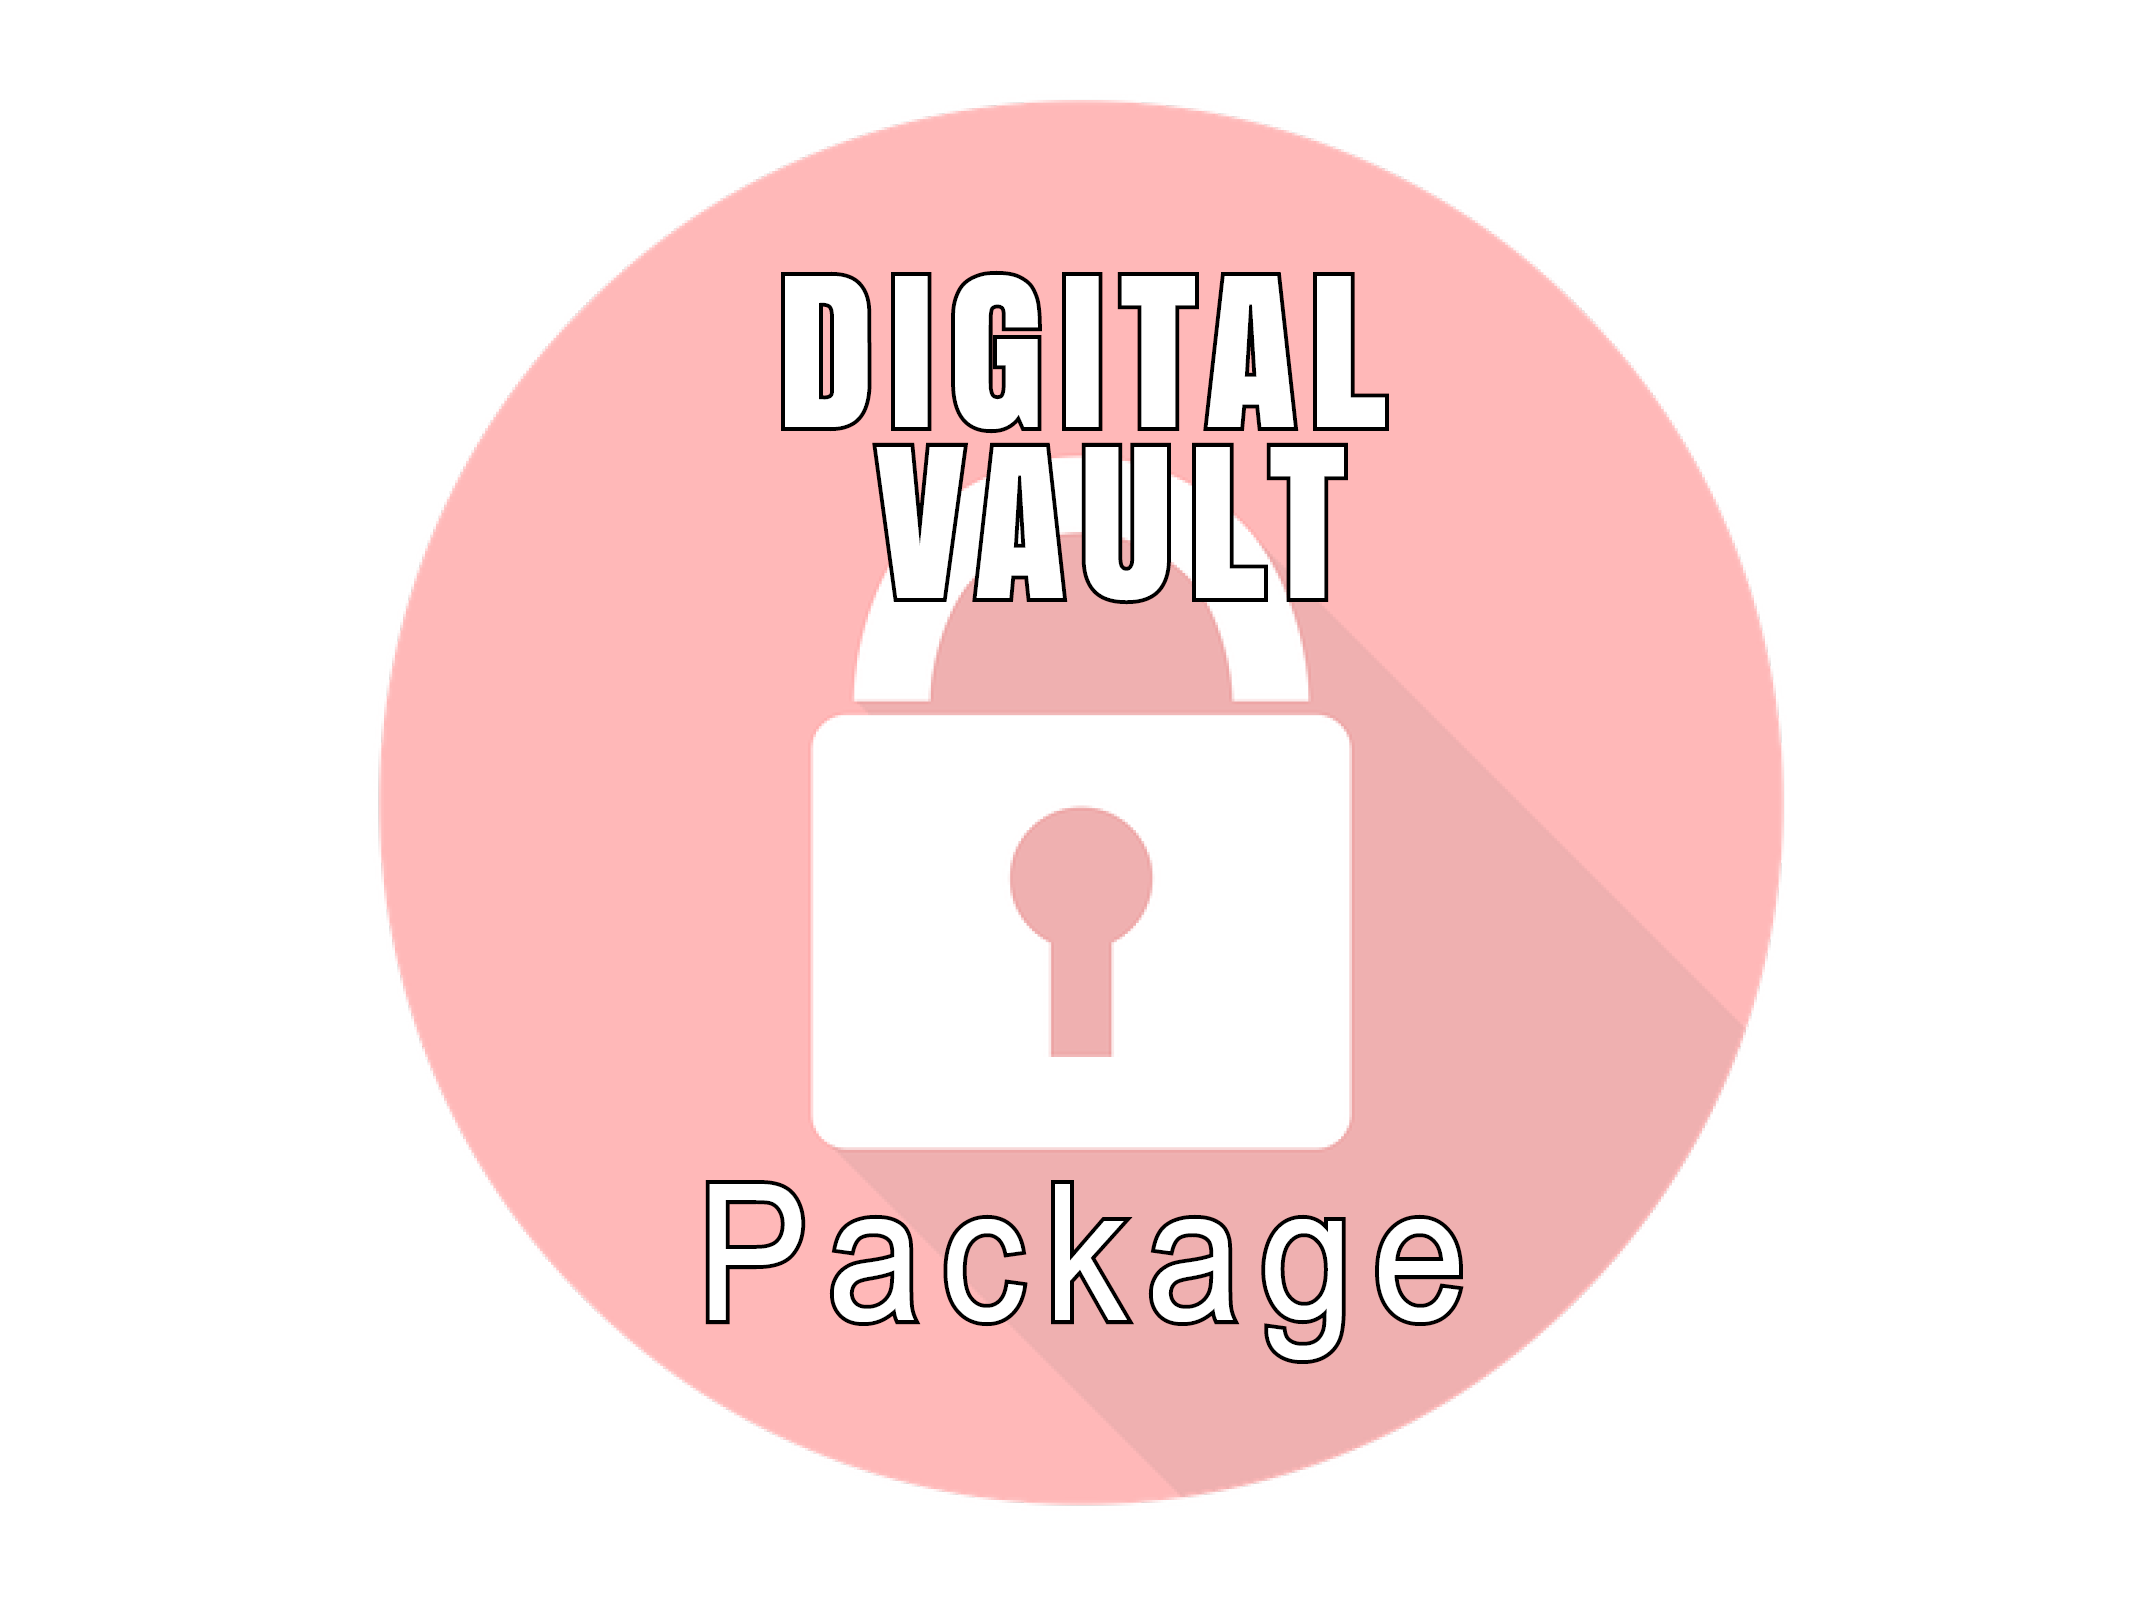 Digital VAULT Package